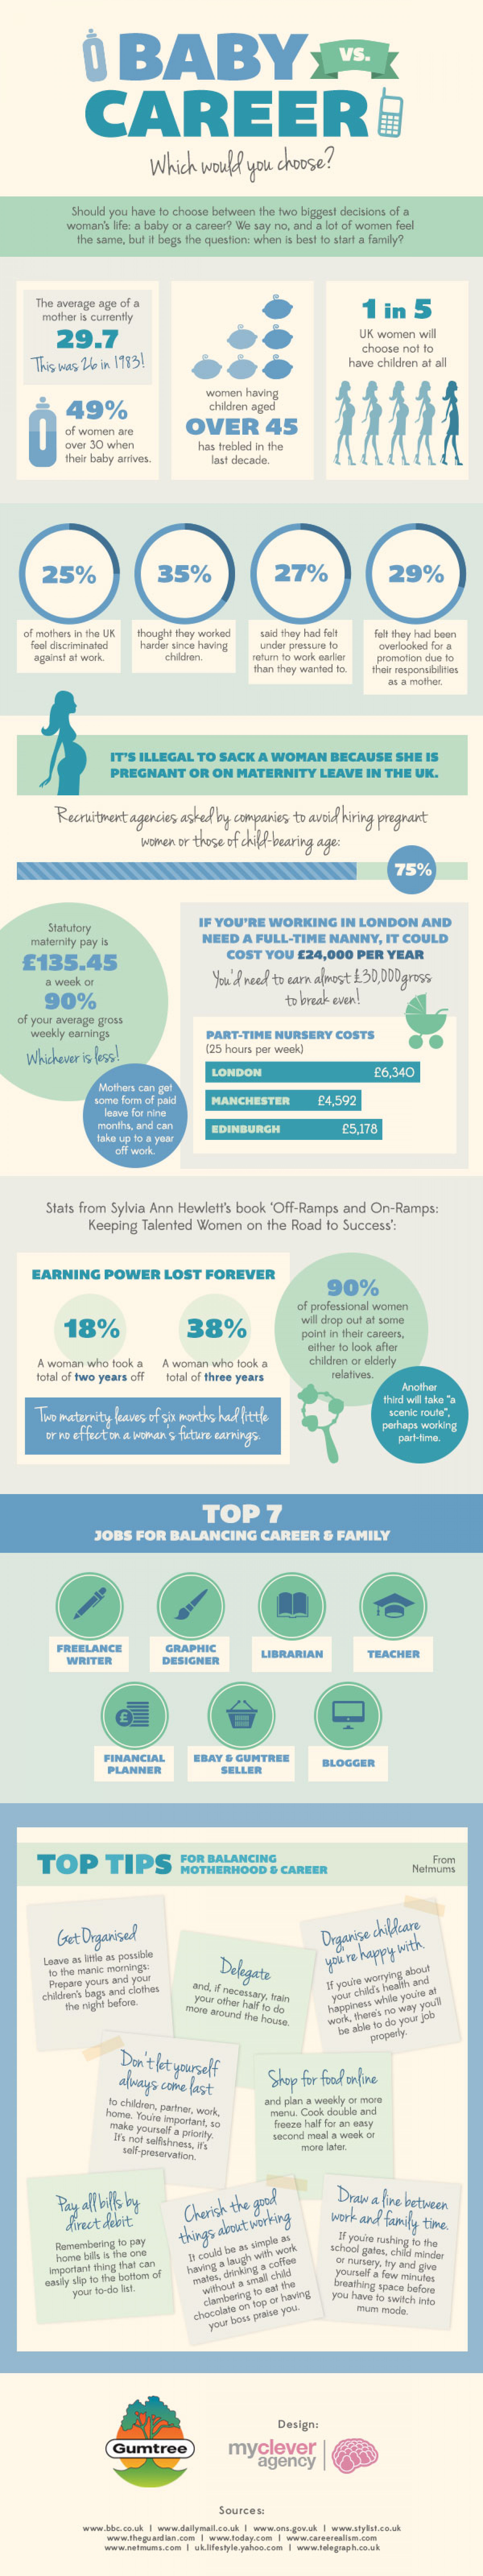 Baby Versus Career: What To Choose Infographic